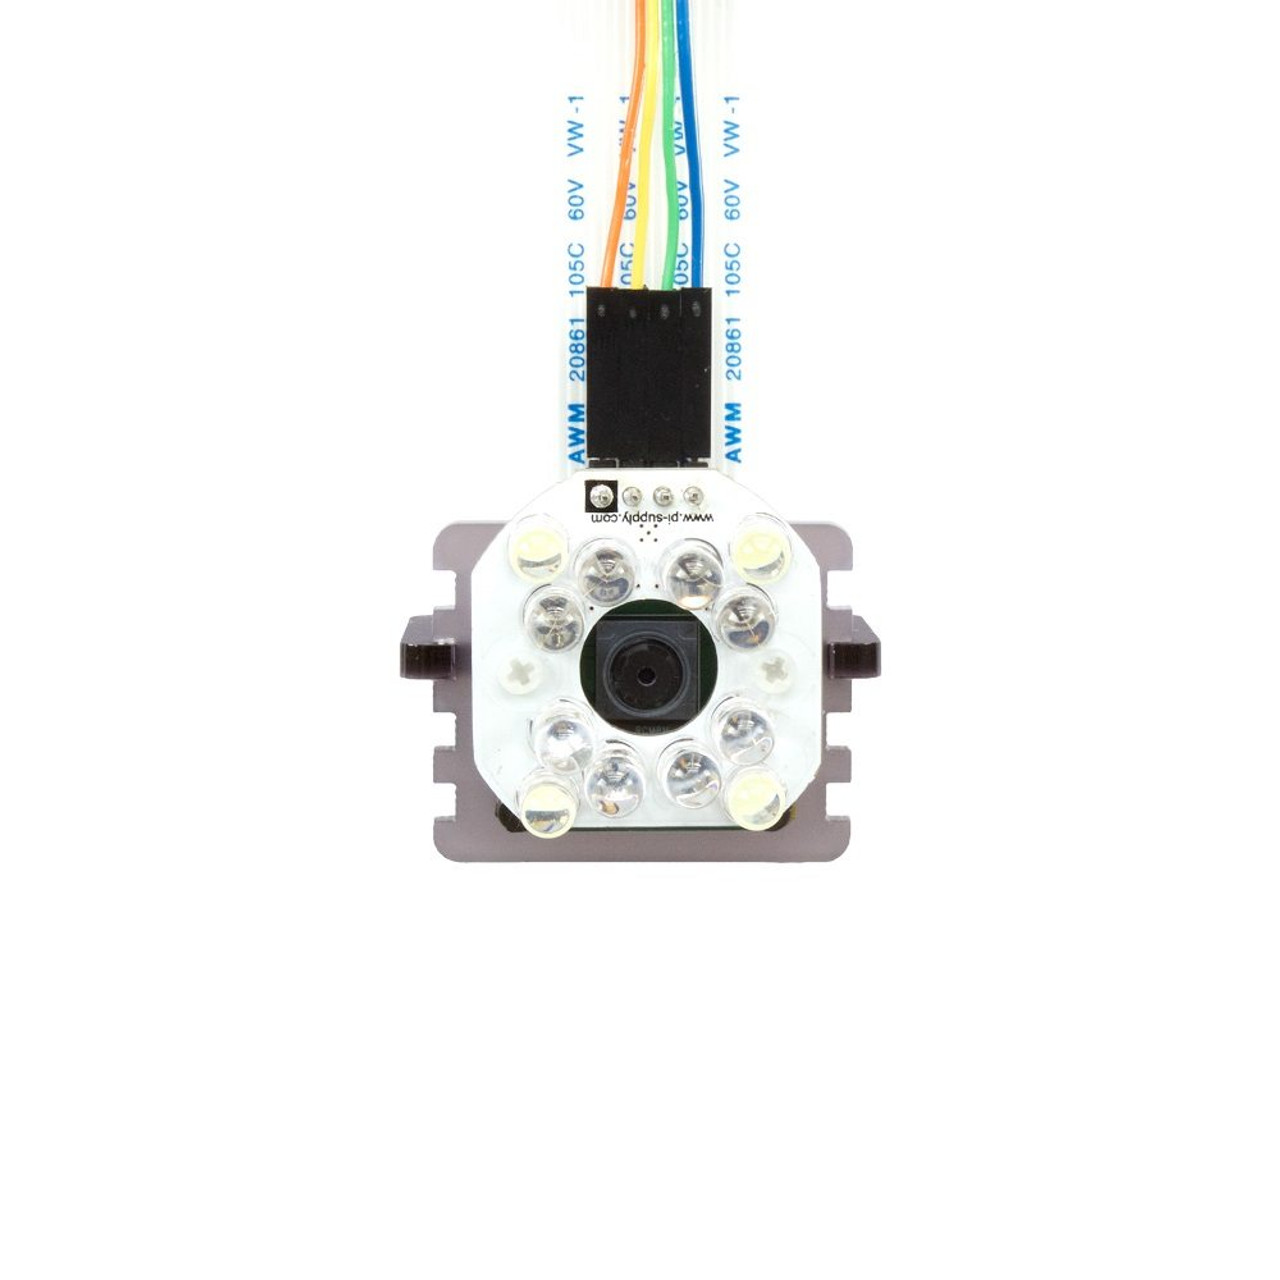 Bright Pi – Bright White and IR Camera Light for Raspberry Pi